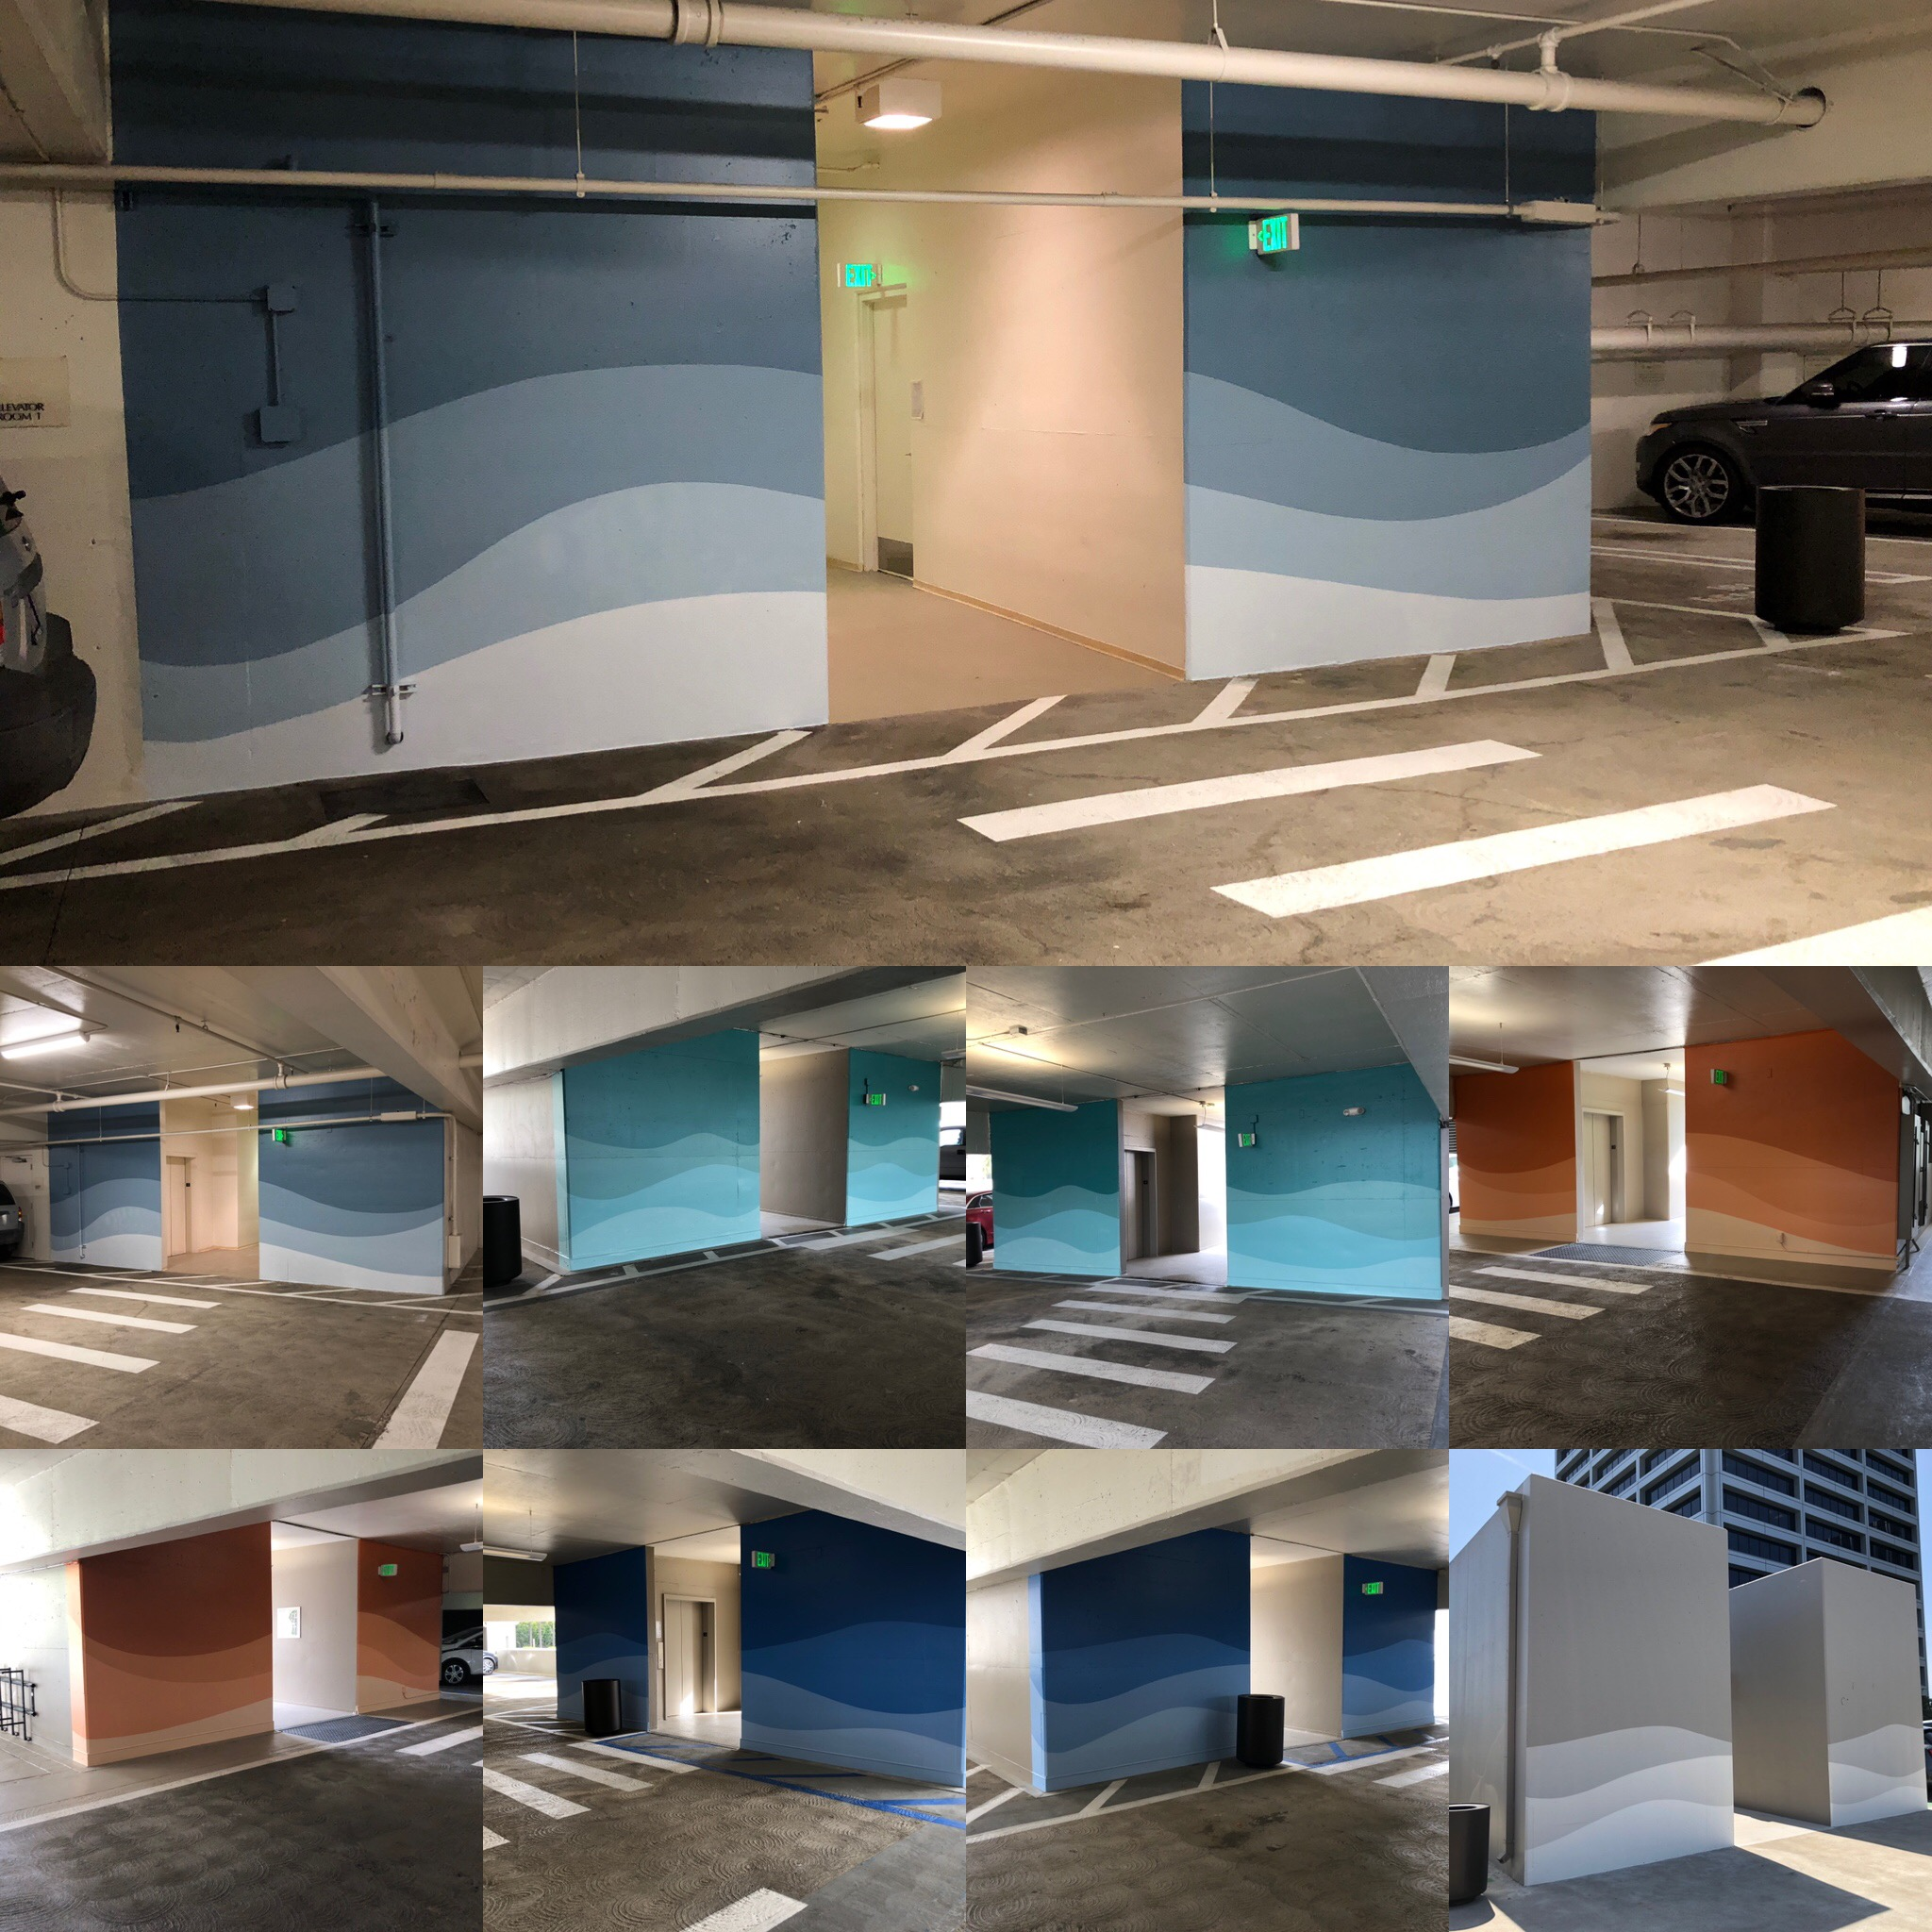 Hand painted graphics for parking structure way finding